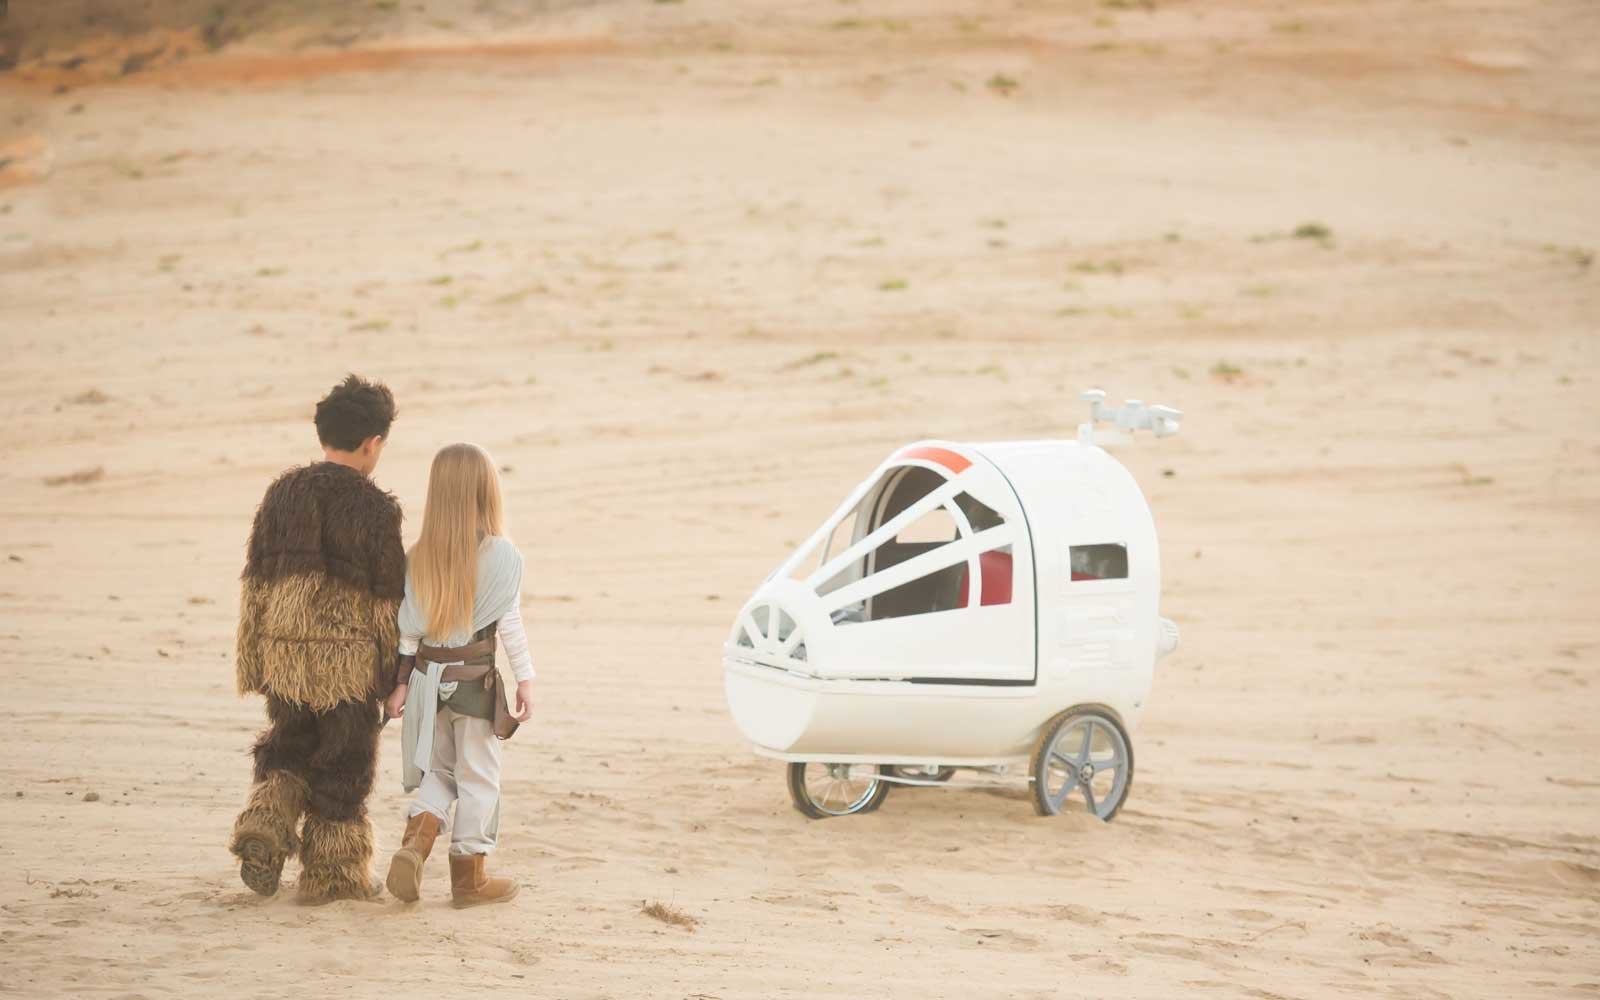 The Spaceship stroller is inspired by the Millennium Falcon.